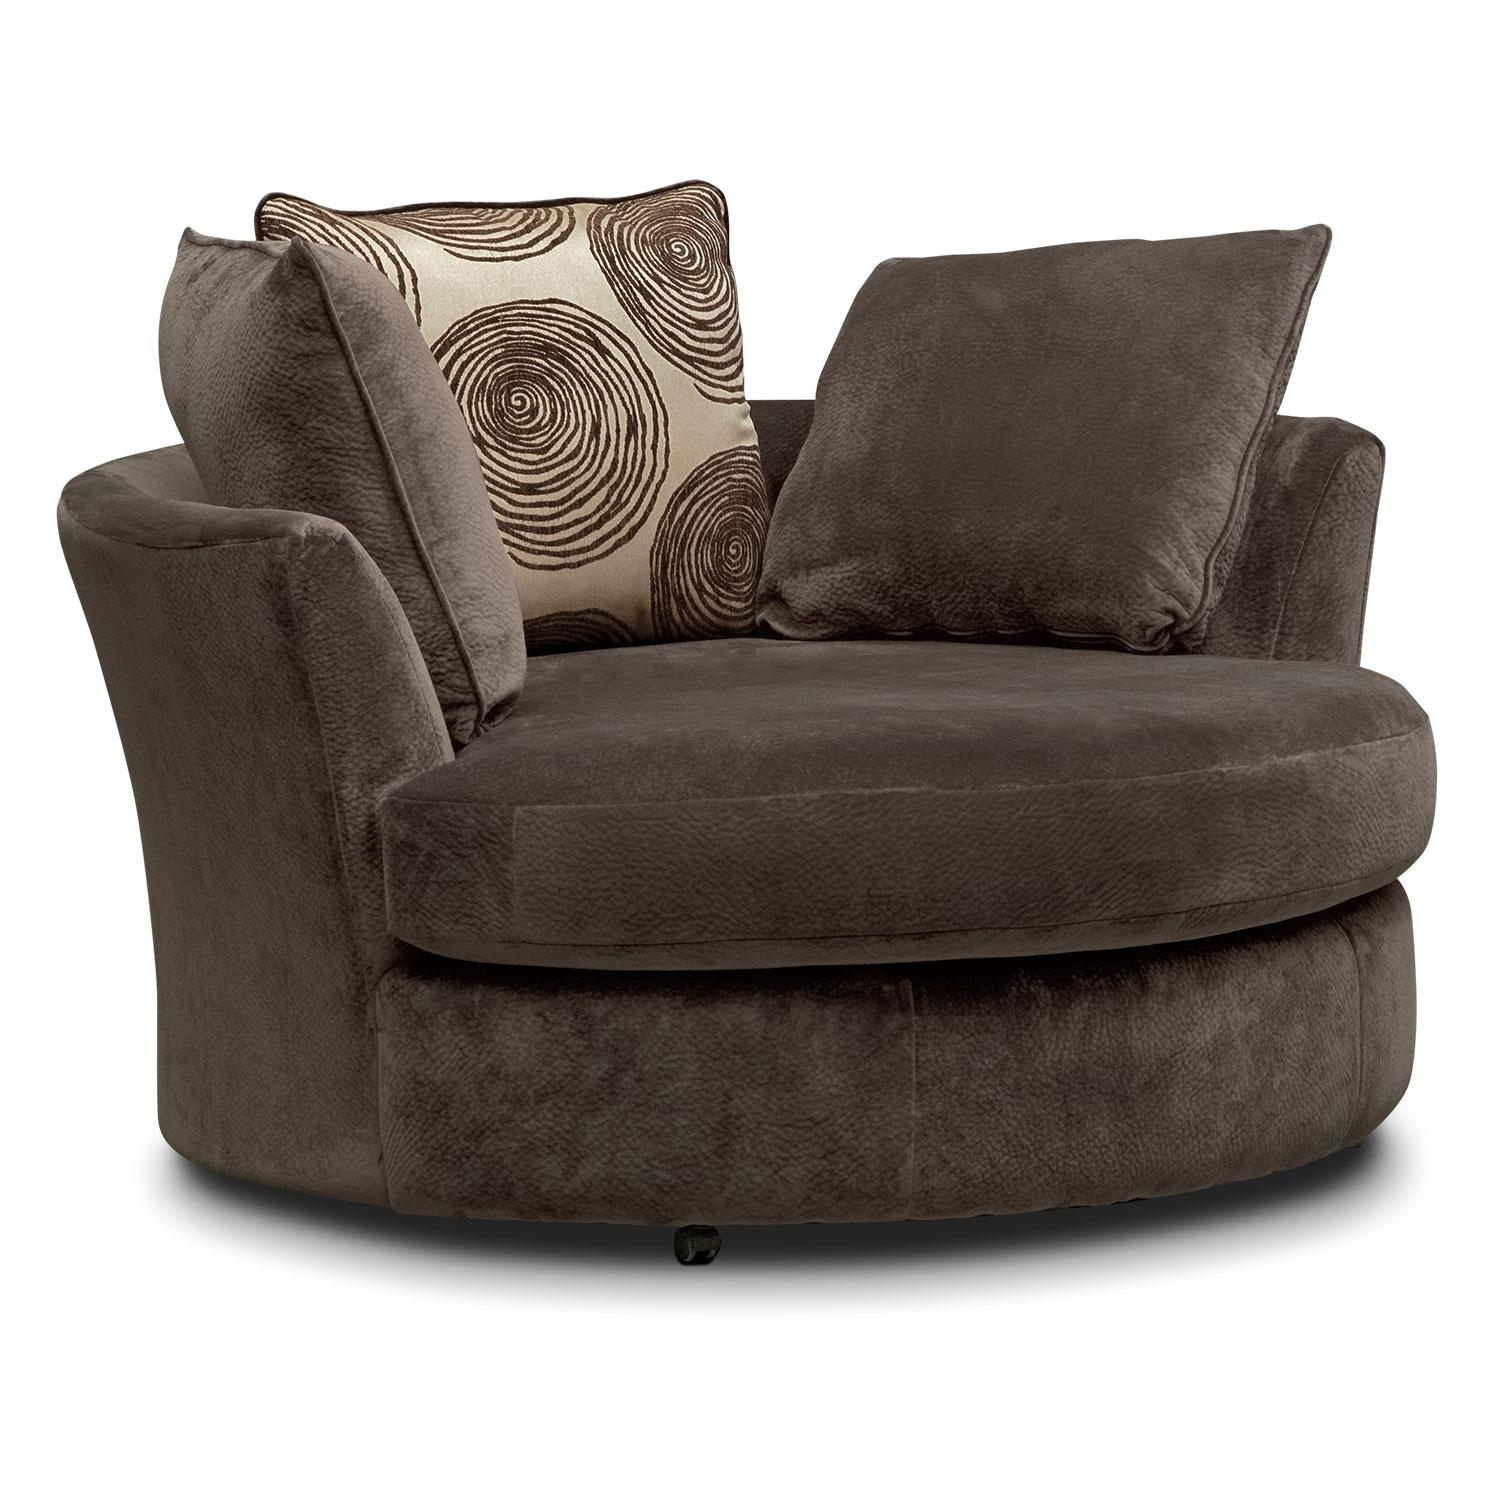 Lovely Swivel Sofa Chair 45 On Living Room Sofa Inspiration With Pertaining To Swivel Sofa Chairs (View 3 of 20)